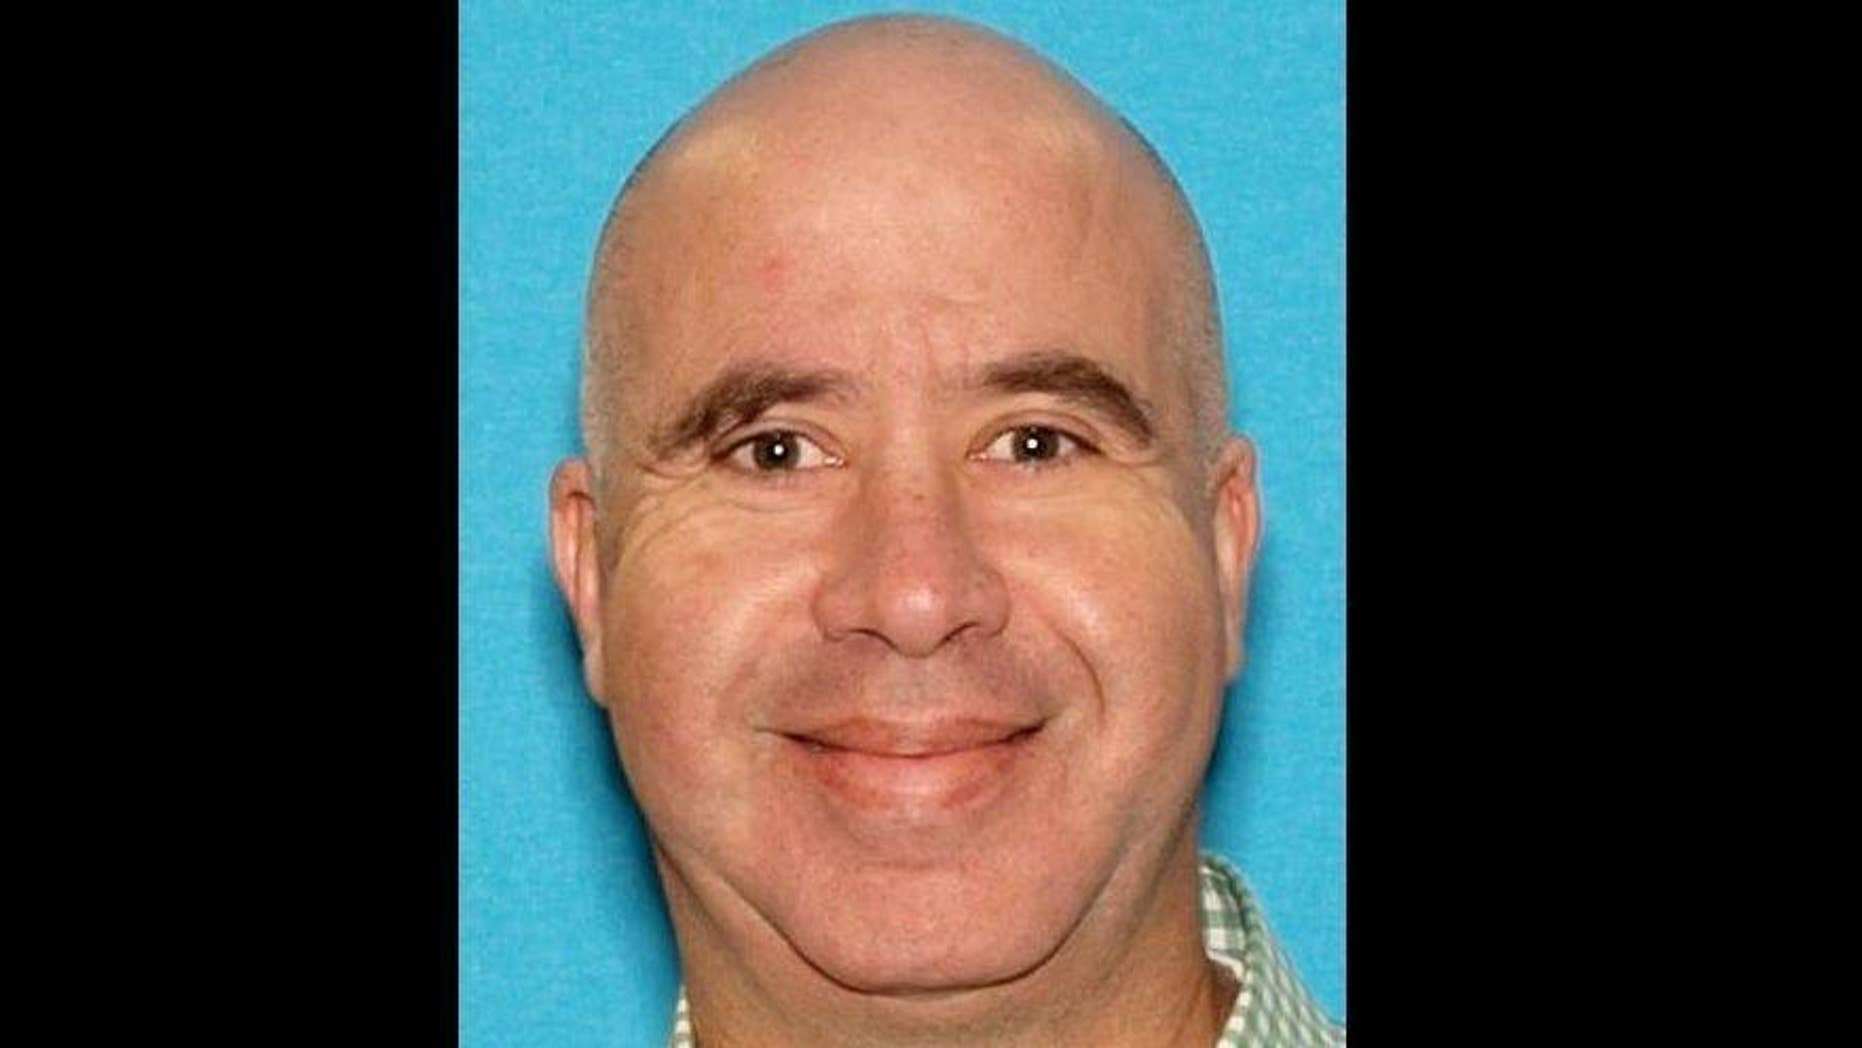 Thomas Mark Castiglia was considered an experienced hiker. San Diego County Sheriff's Department